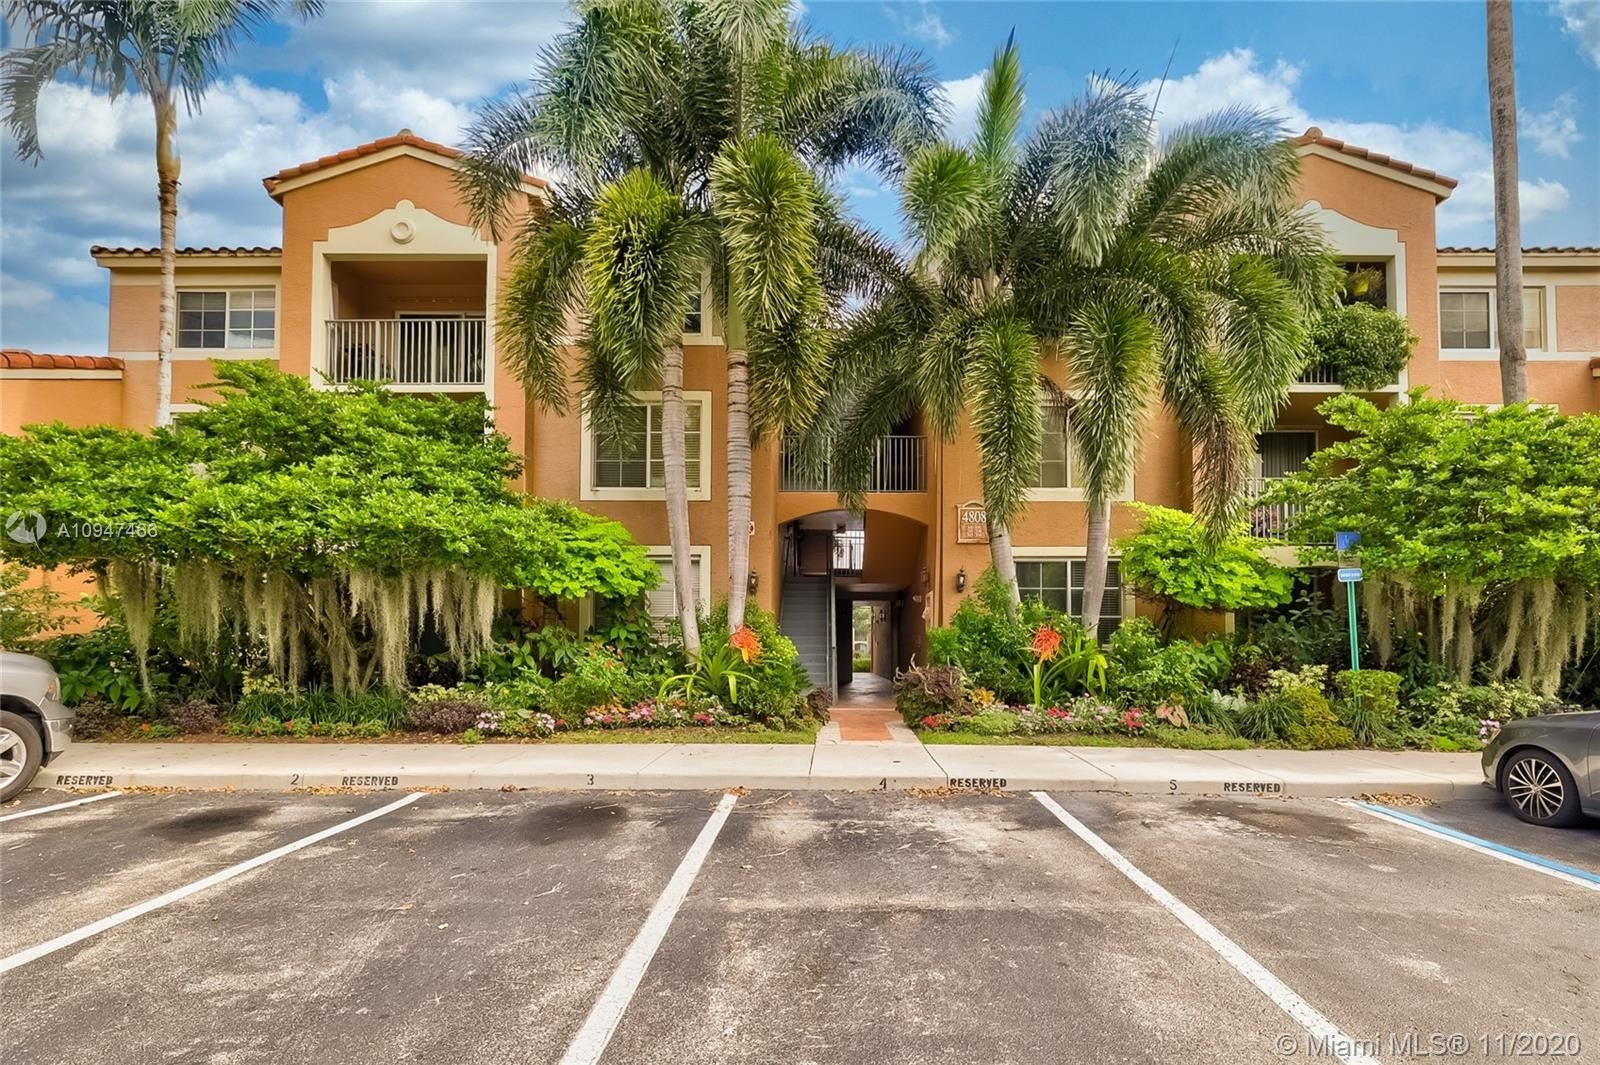 4808 W State Road 7 #13303, Coconut Creek, FL 33073 - #: A10947466